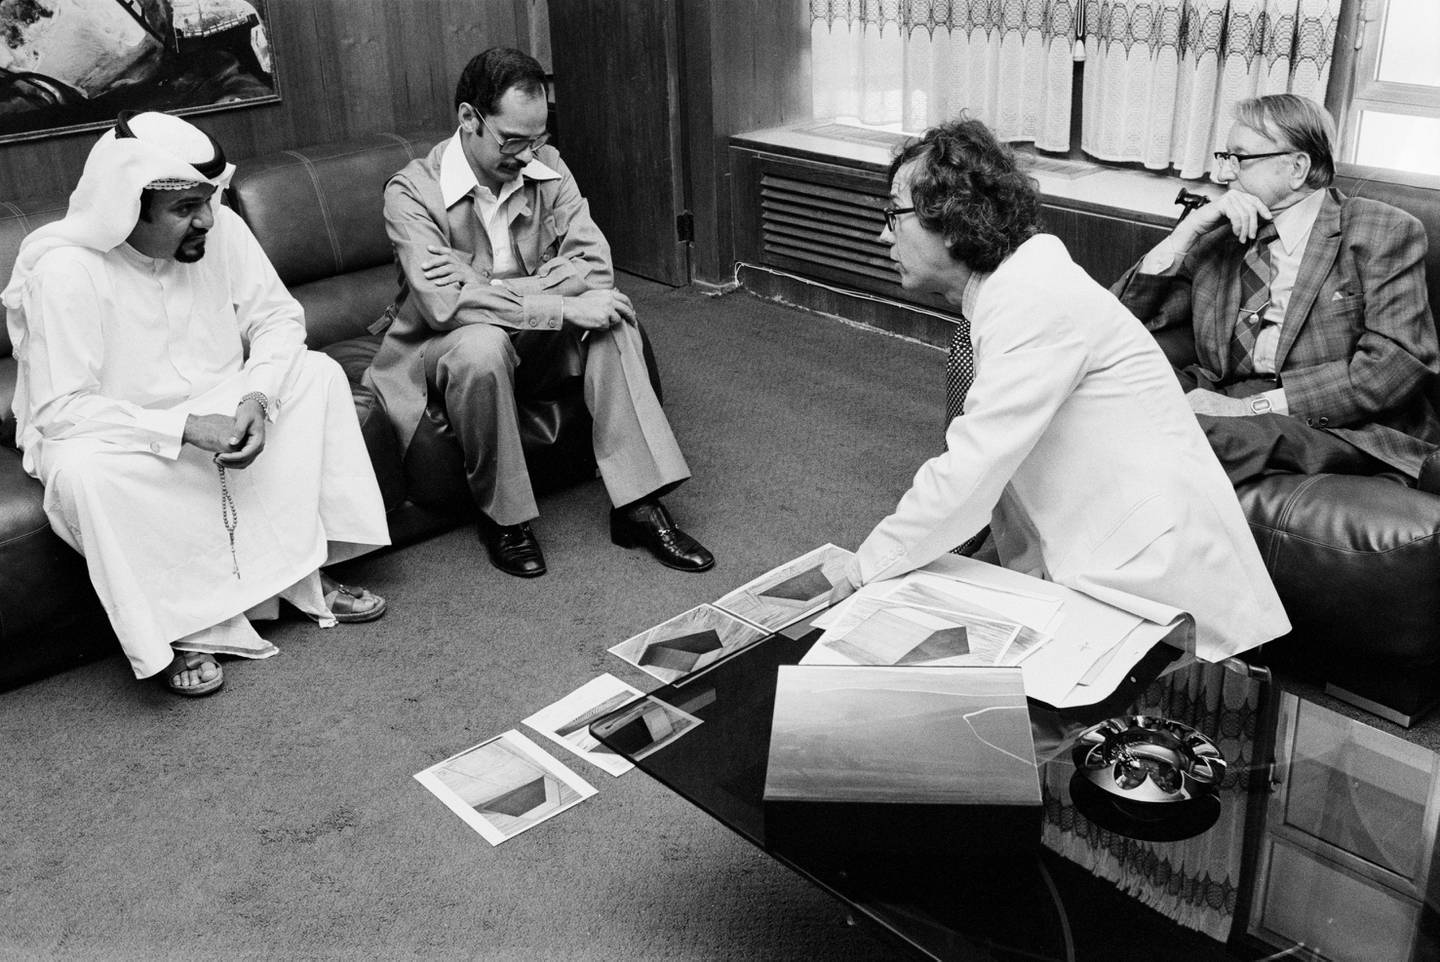 Christo, in the white suit, explaining the preliminary engineering concept for The Mastaba to officials of the Ministry of Construction. The man seated next to the dishdasha guy is Azmi Abu Taleb, Municipal Town Planning Architect.) Photo: Wolfgang Volz, ©Christo.